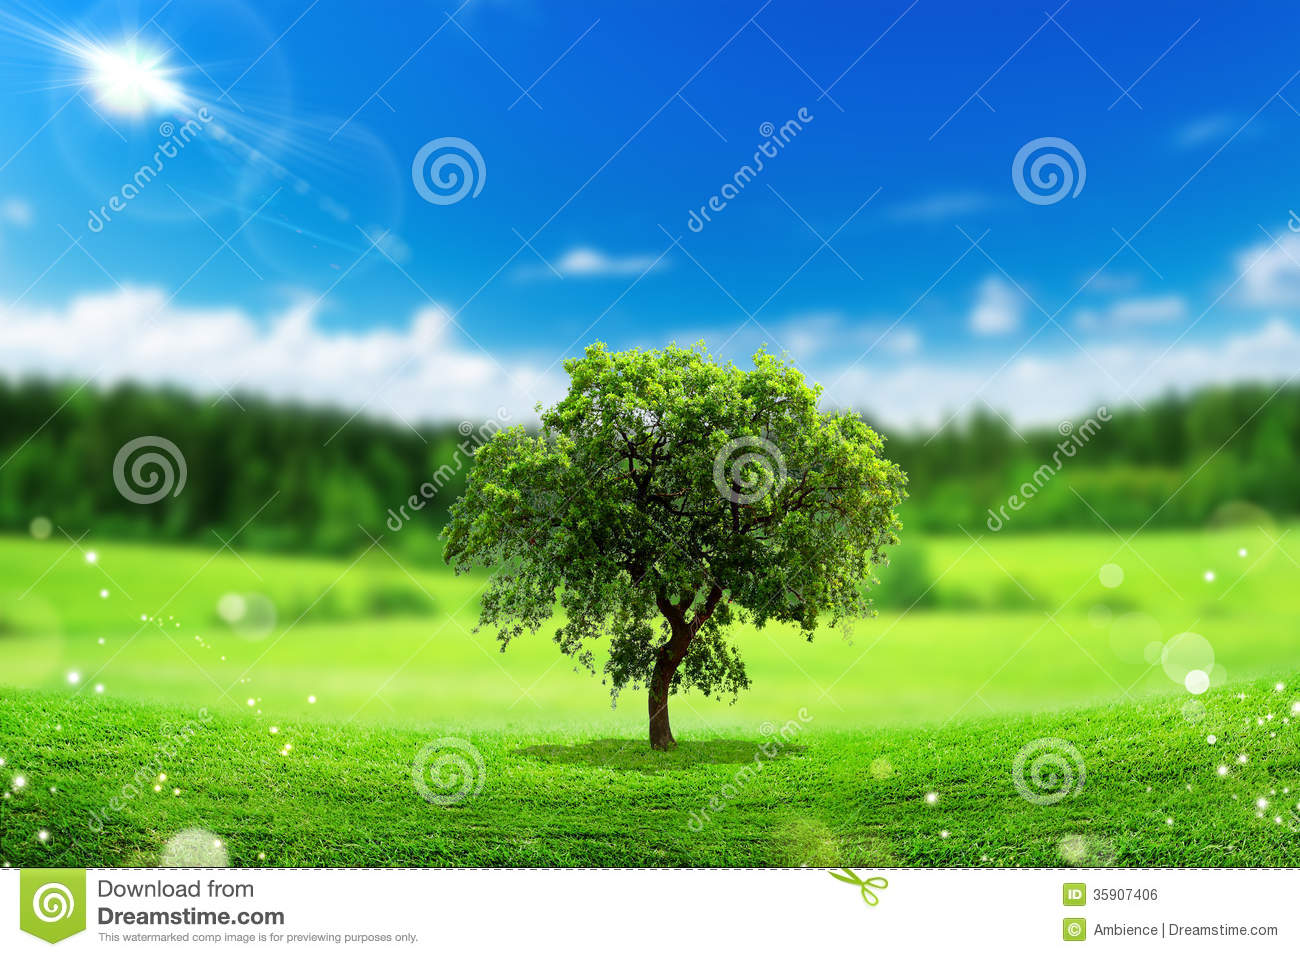 28 Environmental Concept Earth Friendly Landscapes  : eco concept beautiful tree landscape clear 35907406 from hdialysis.com size 1300 x 957 jpeg 202kB